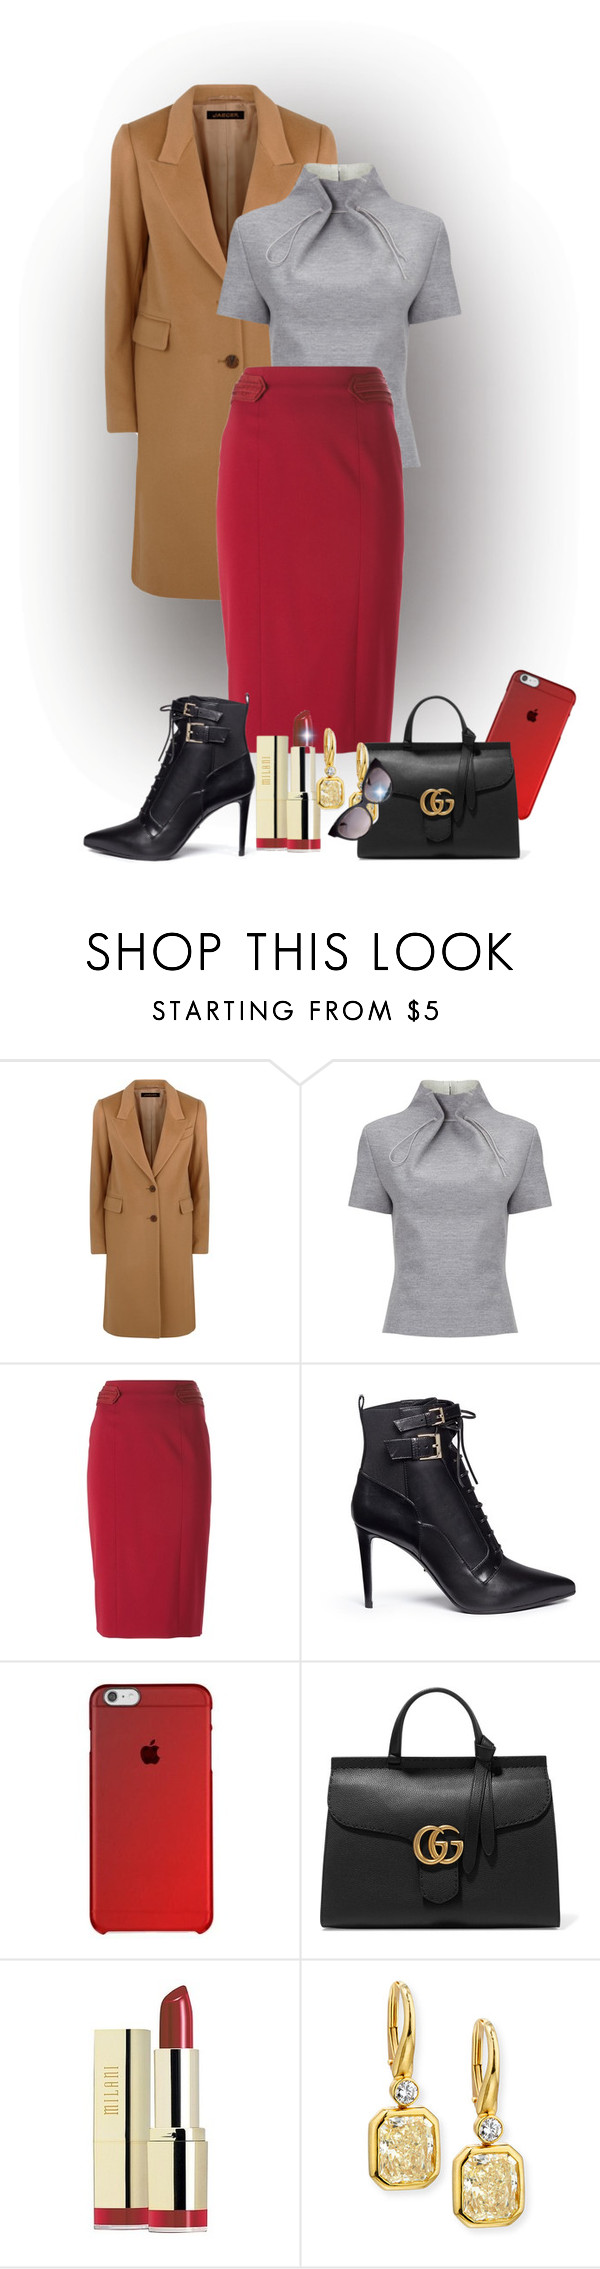 """""""Untitled #2105"""" by swc0509 ❤ liked on Polyvore featuring Jaeger, J. JS Lee, Emporio Armani, Sergio Rossi, Gucci, Milani, Rahaminov Diamonds and Emilio Pucci"""